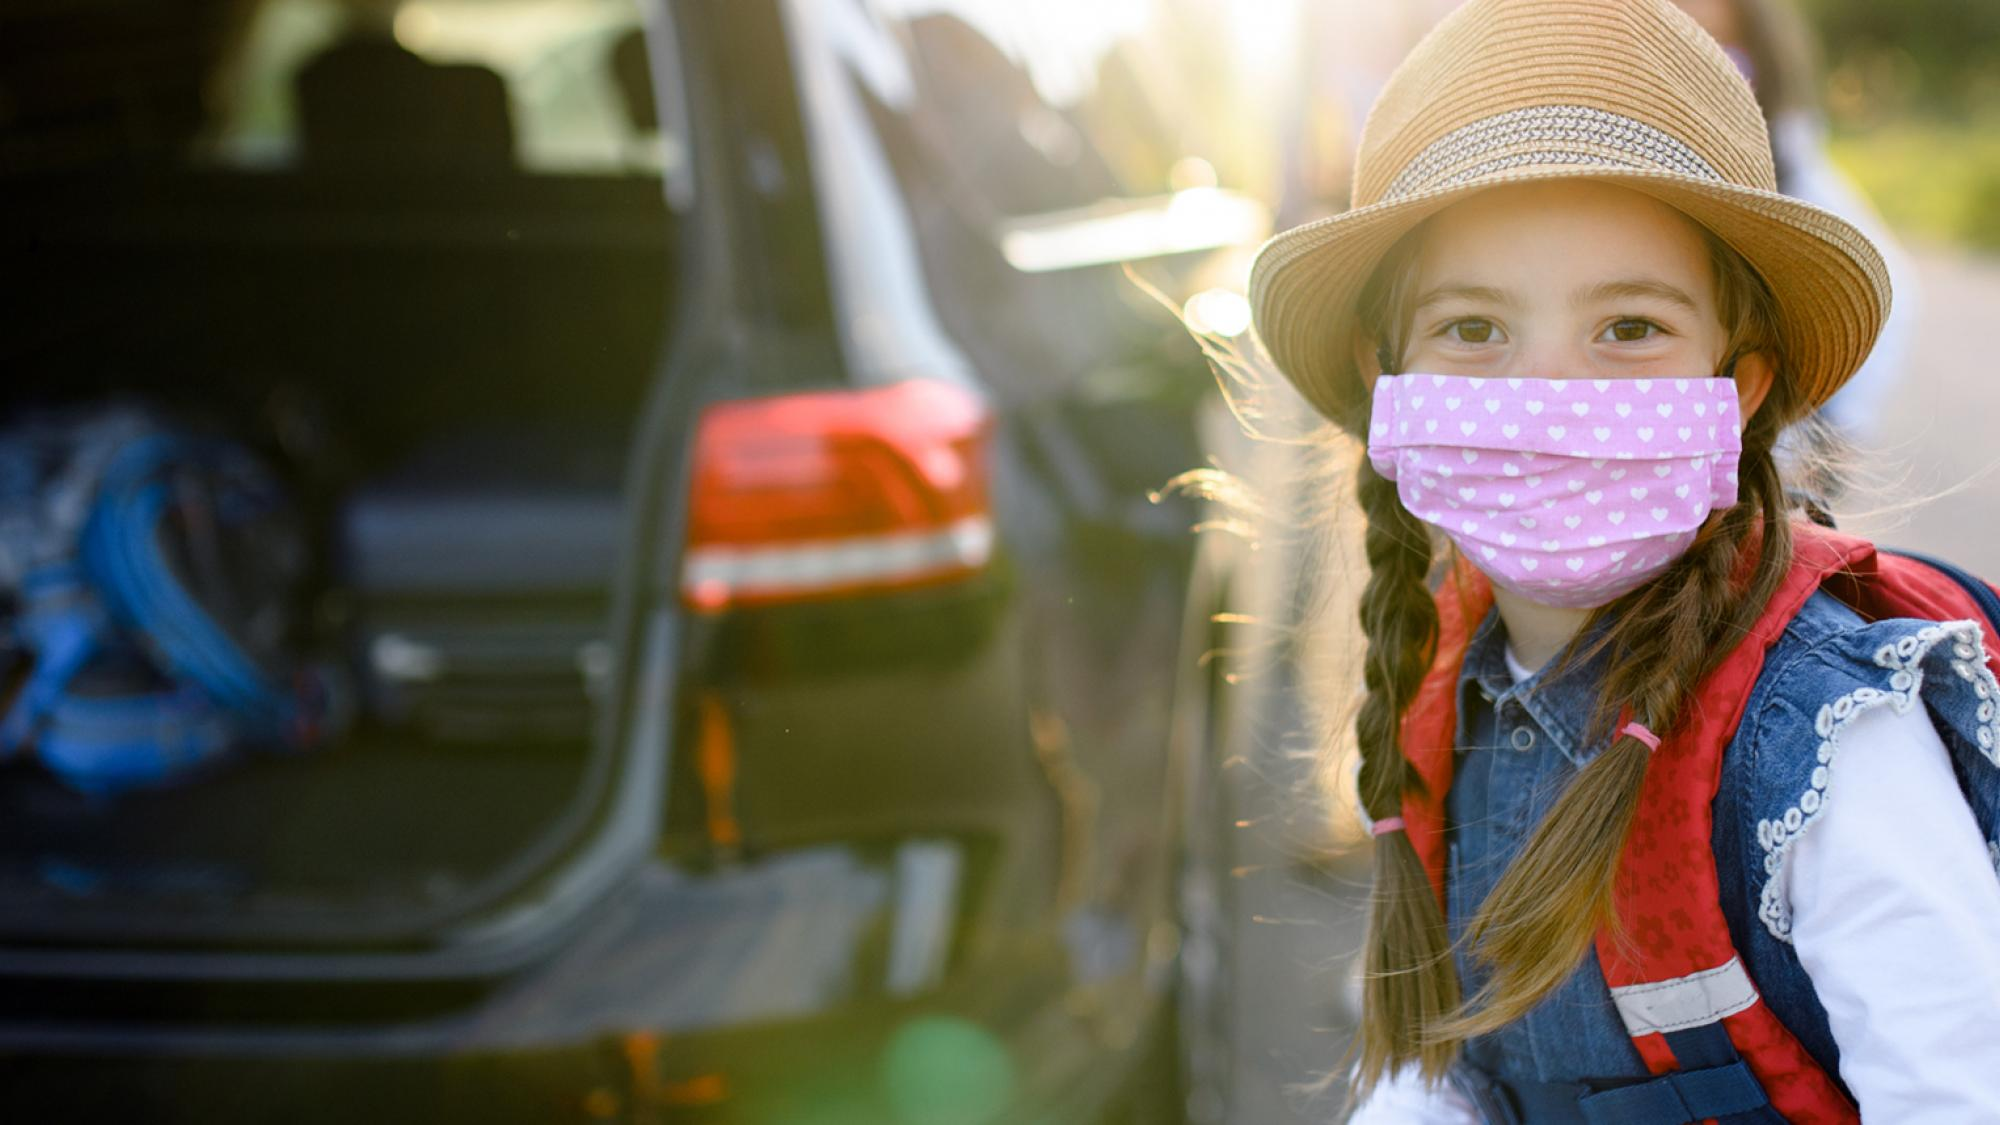 Young girl with pink face mask next to vehicle